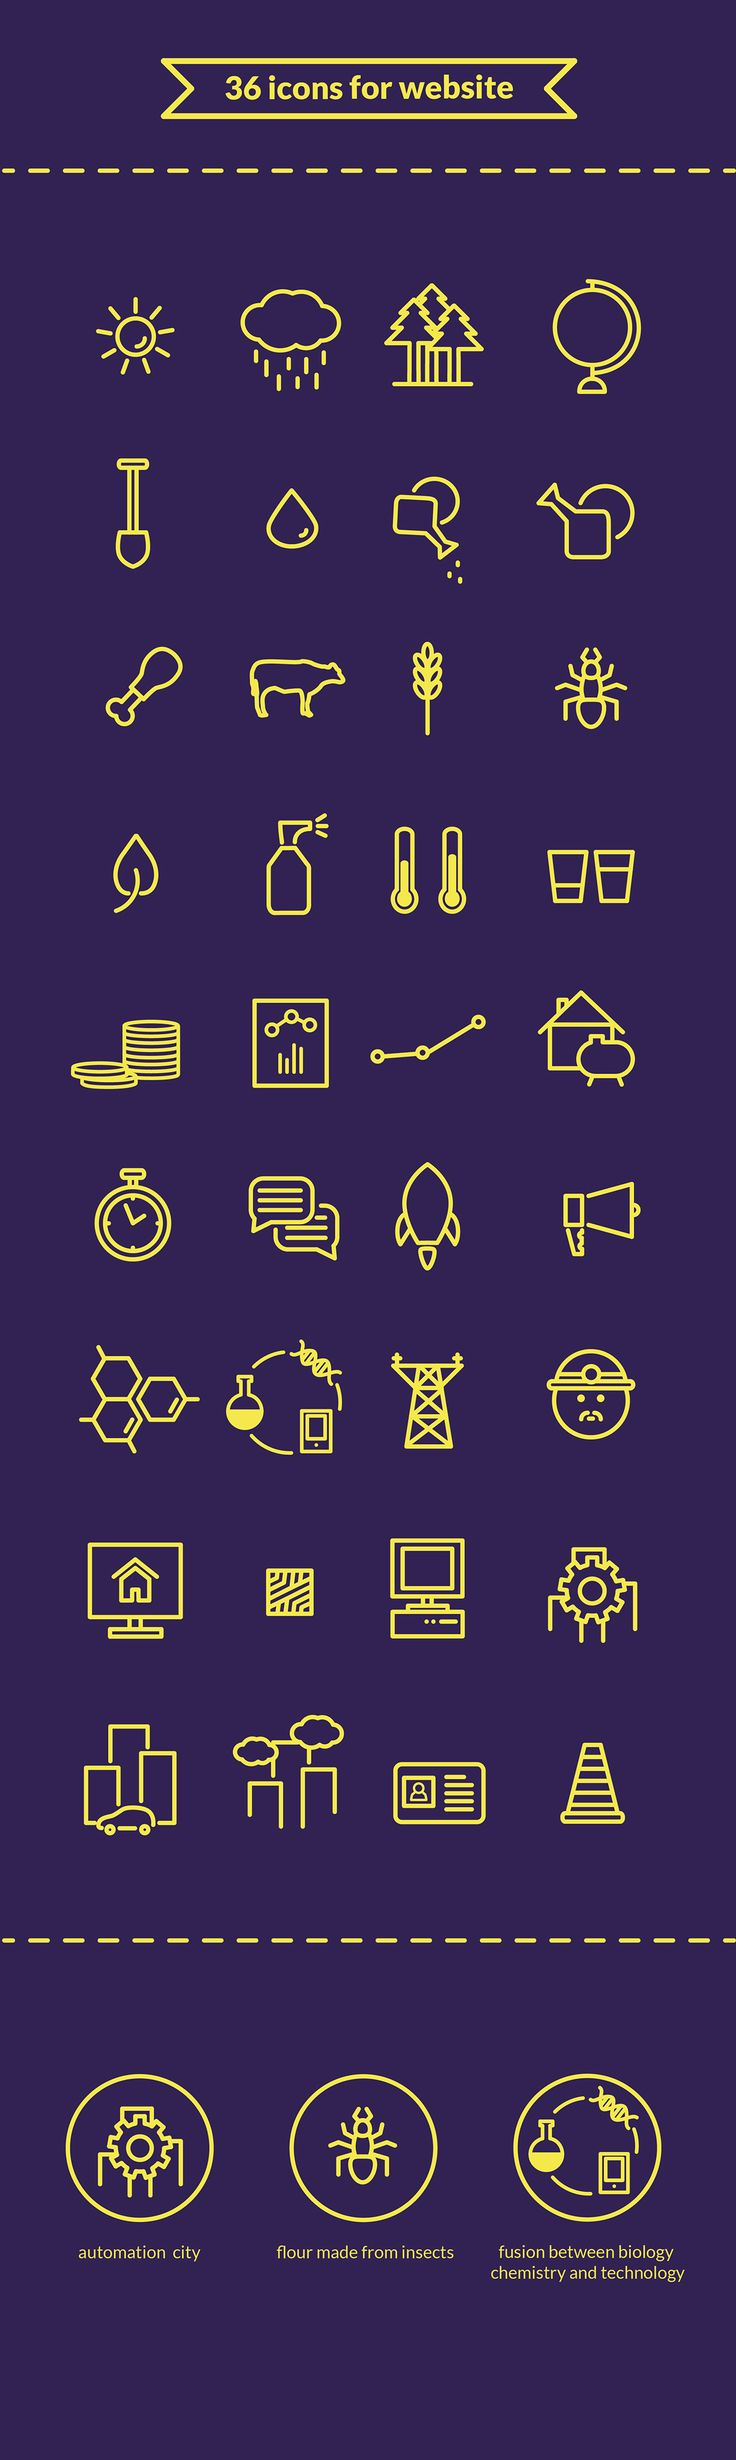 Icons for website on Behance